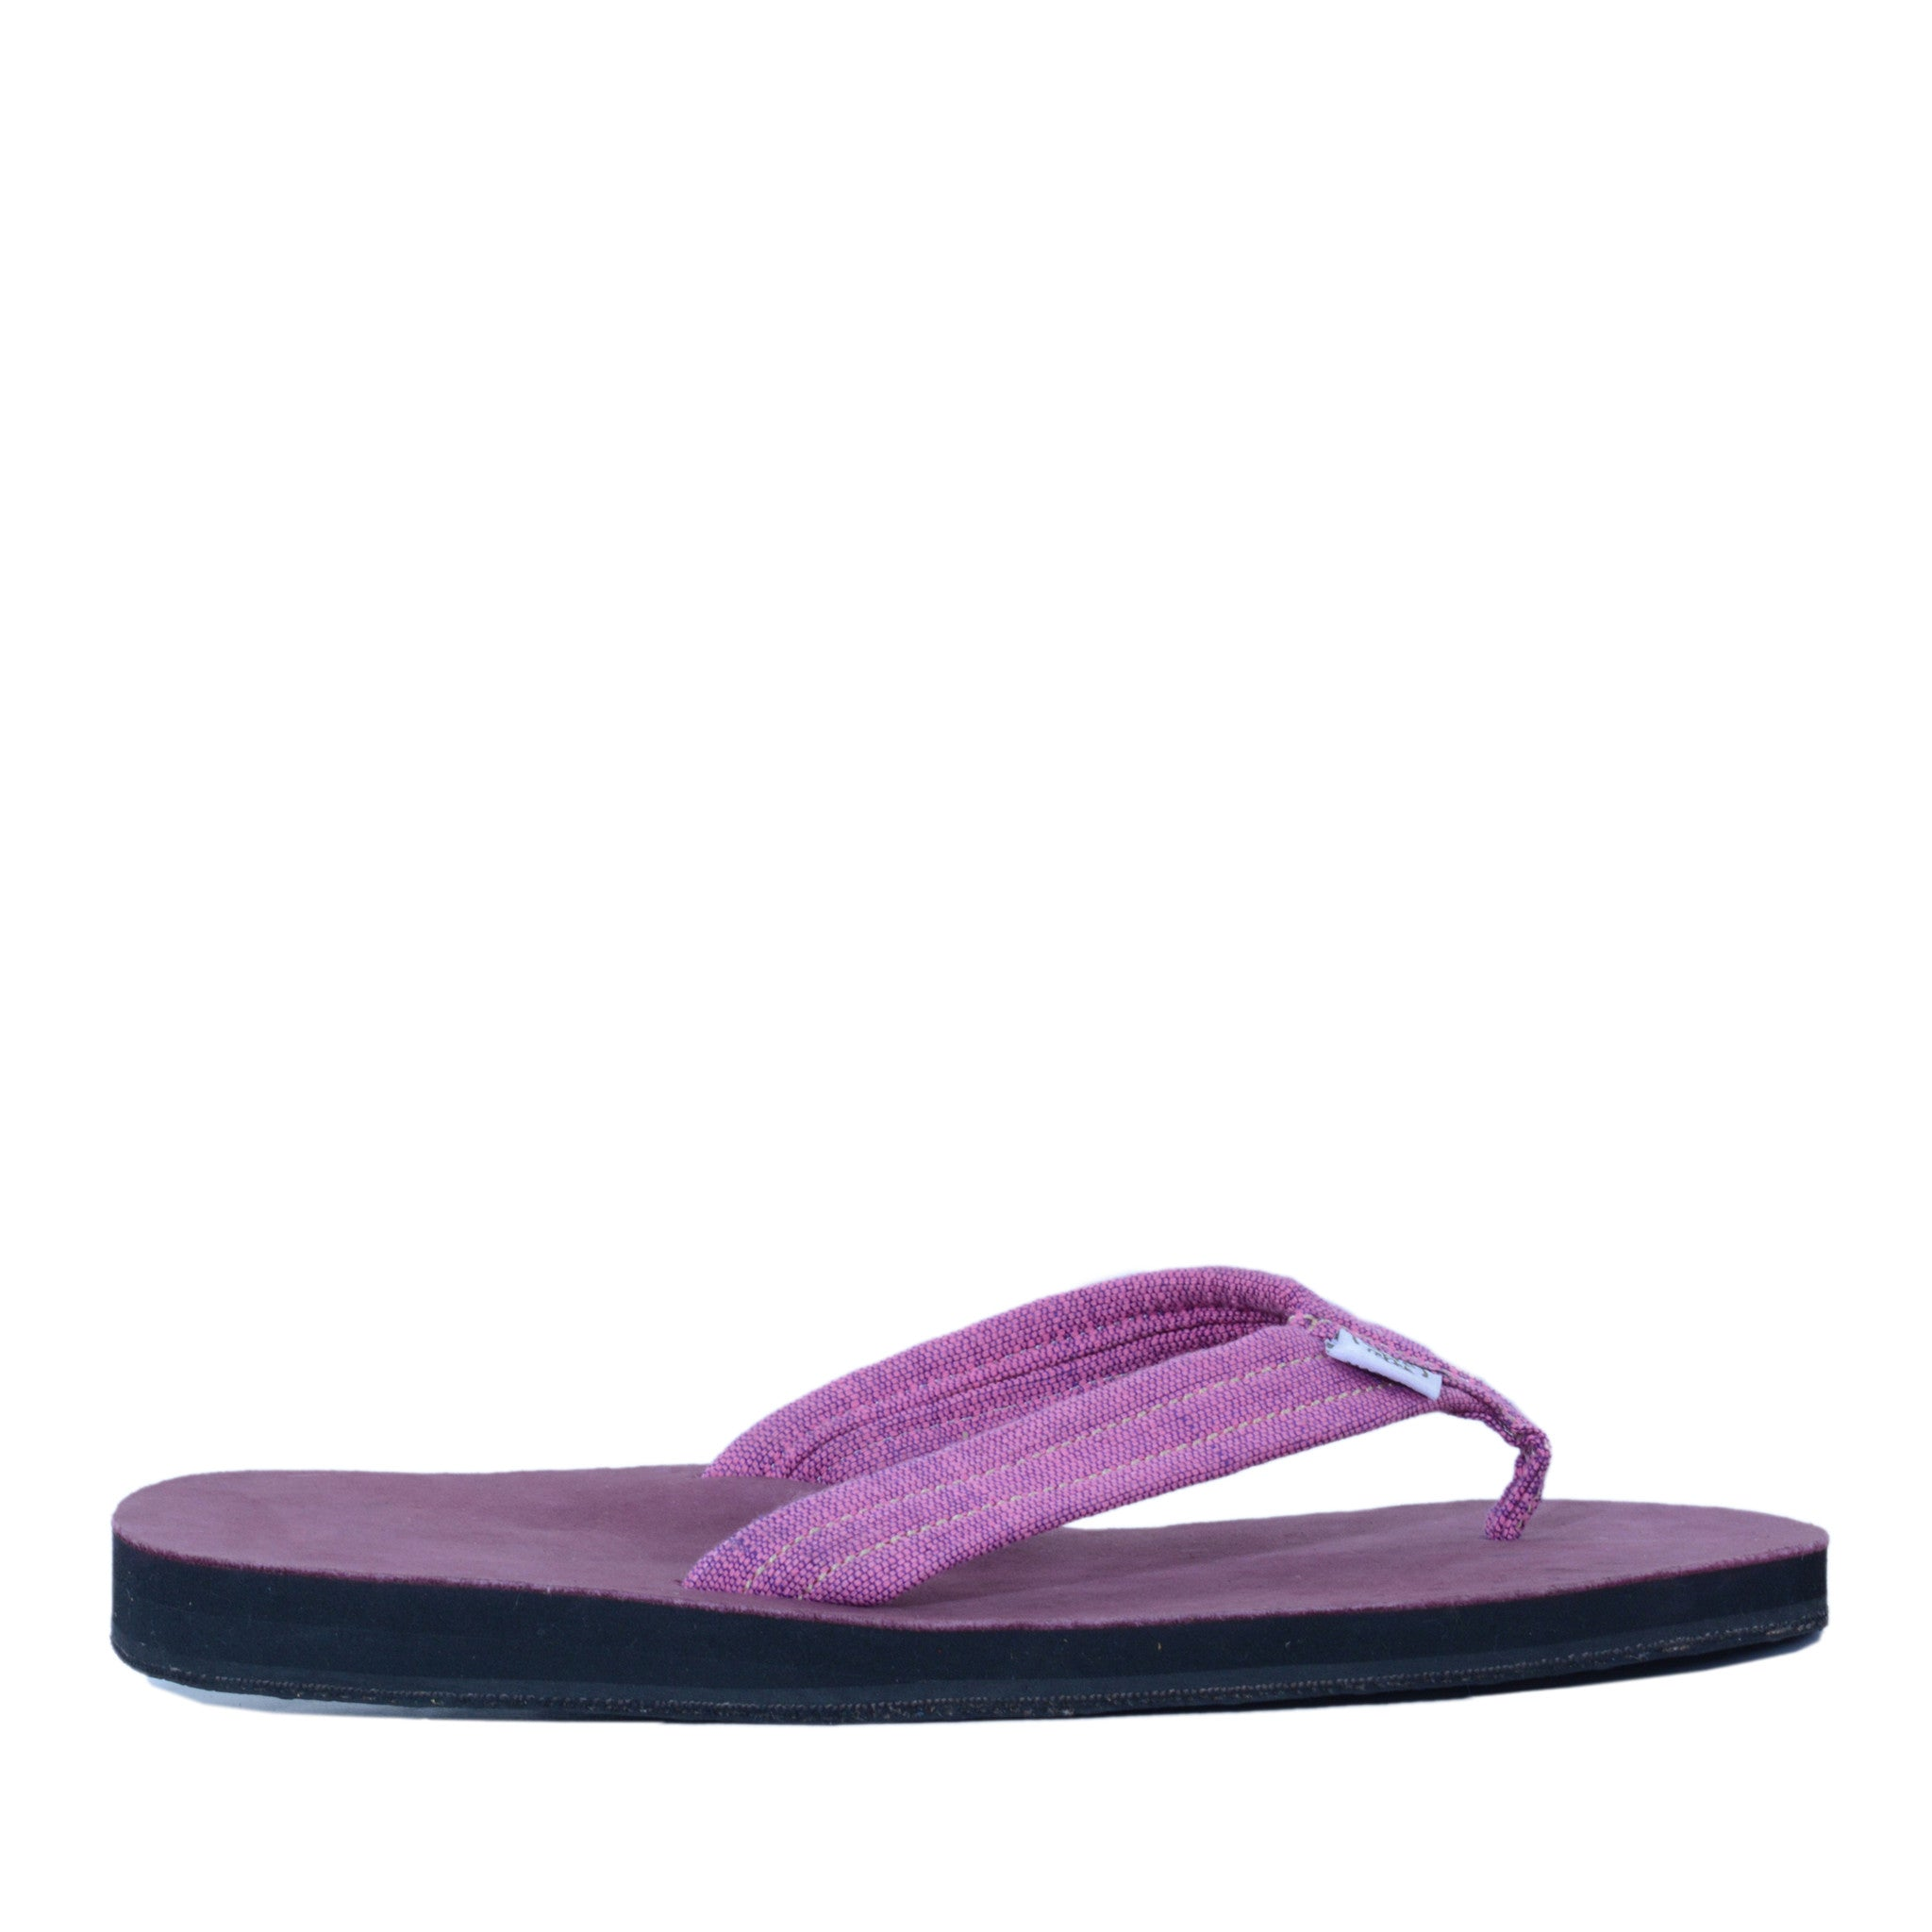 solerebels purple nuDEAL mSh 2 Sandals